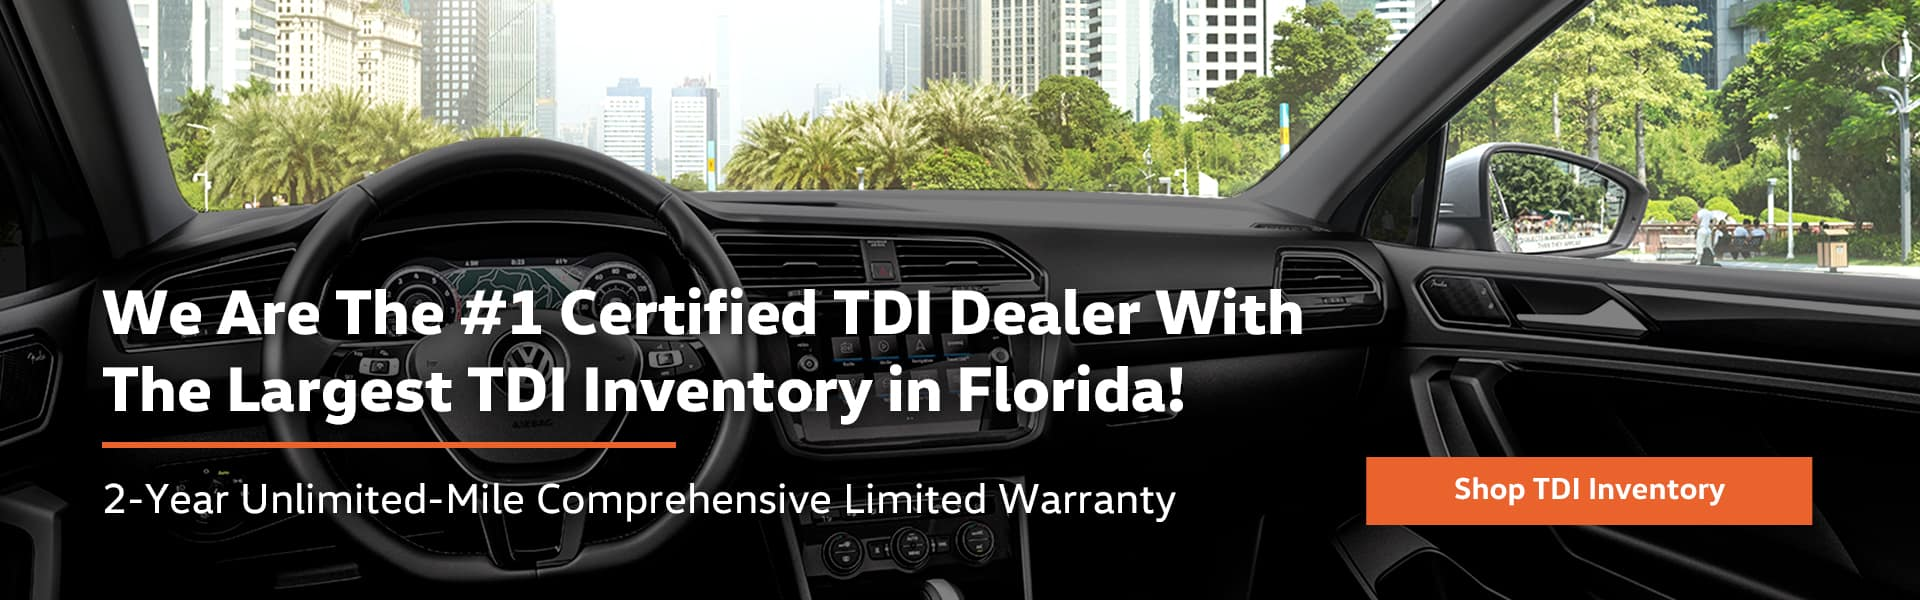 FL TDI Dealer